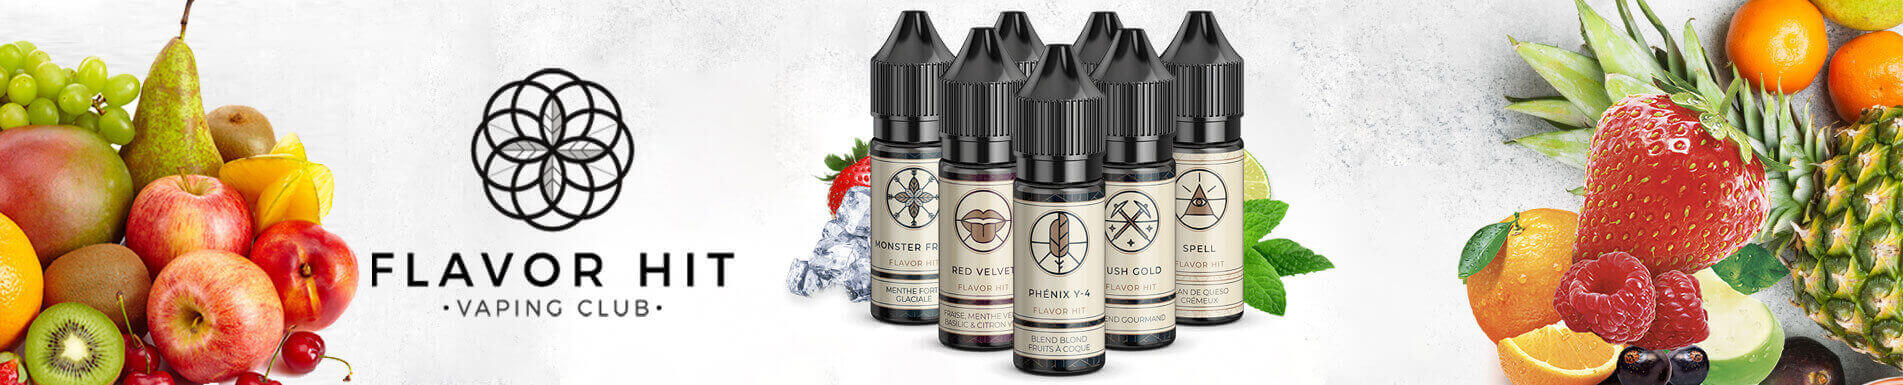 eliquide 10 ml flavor hit